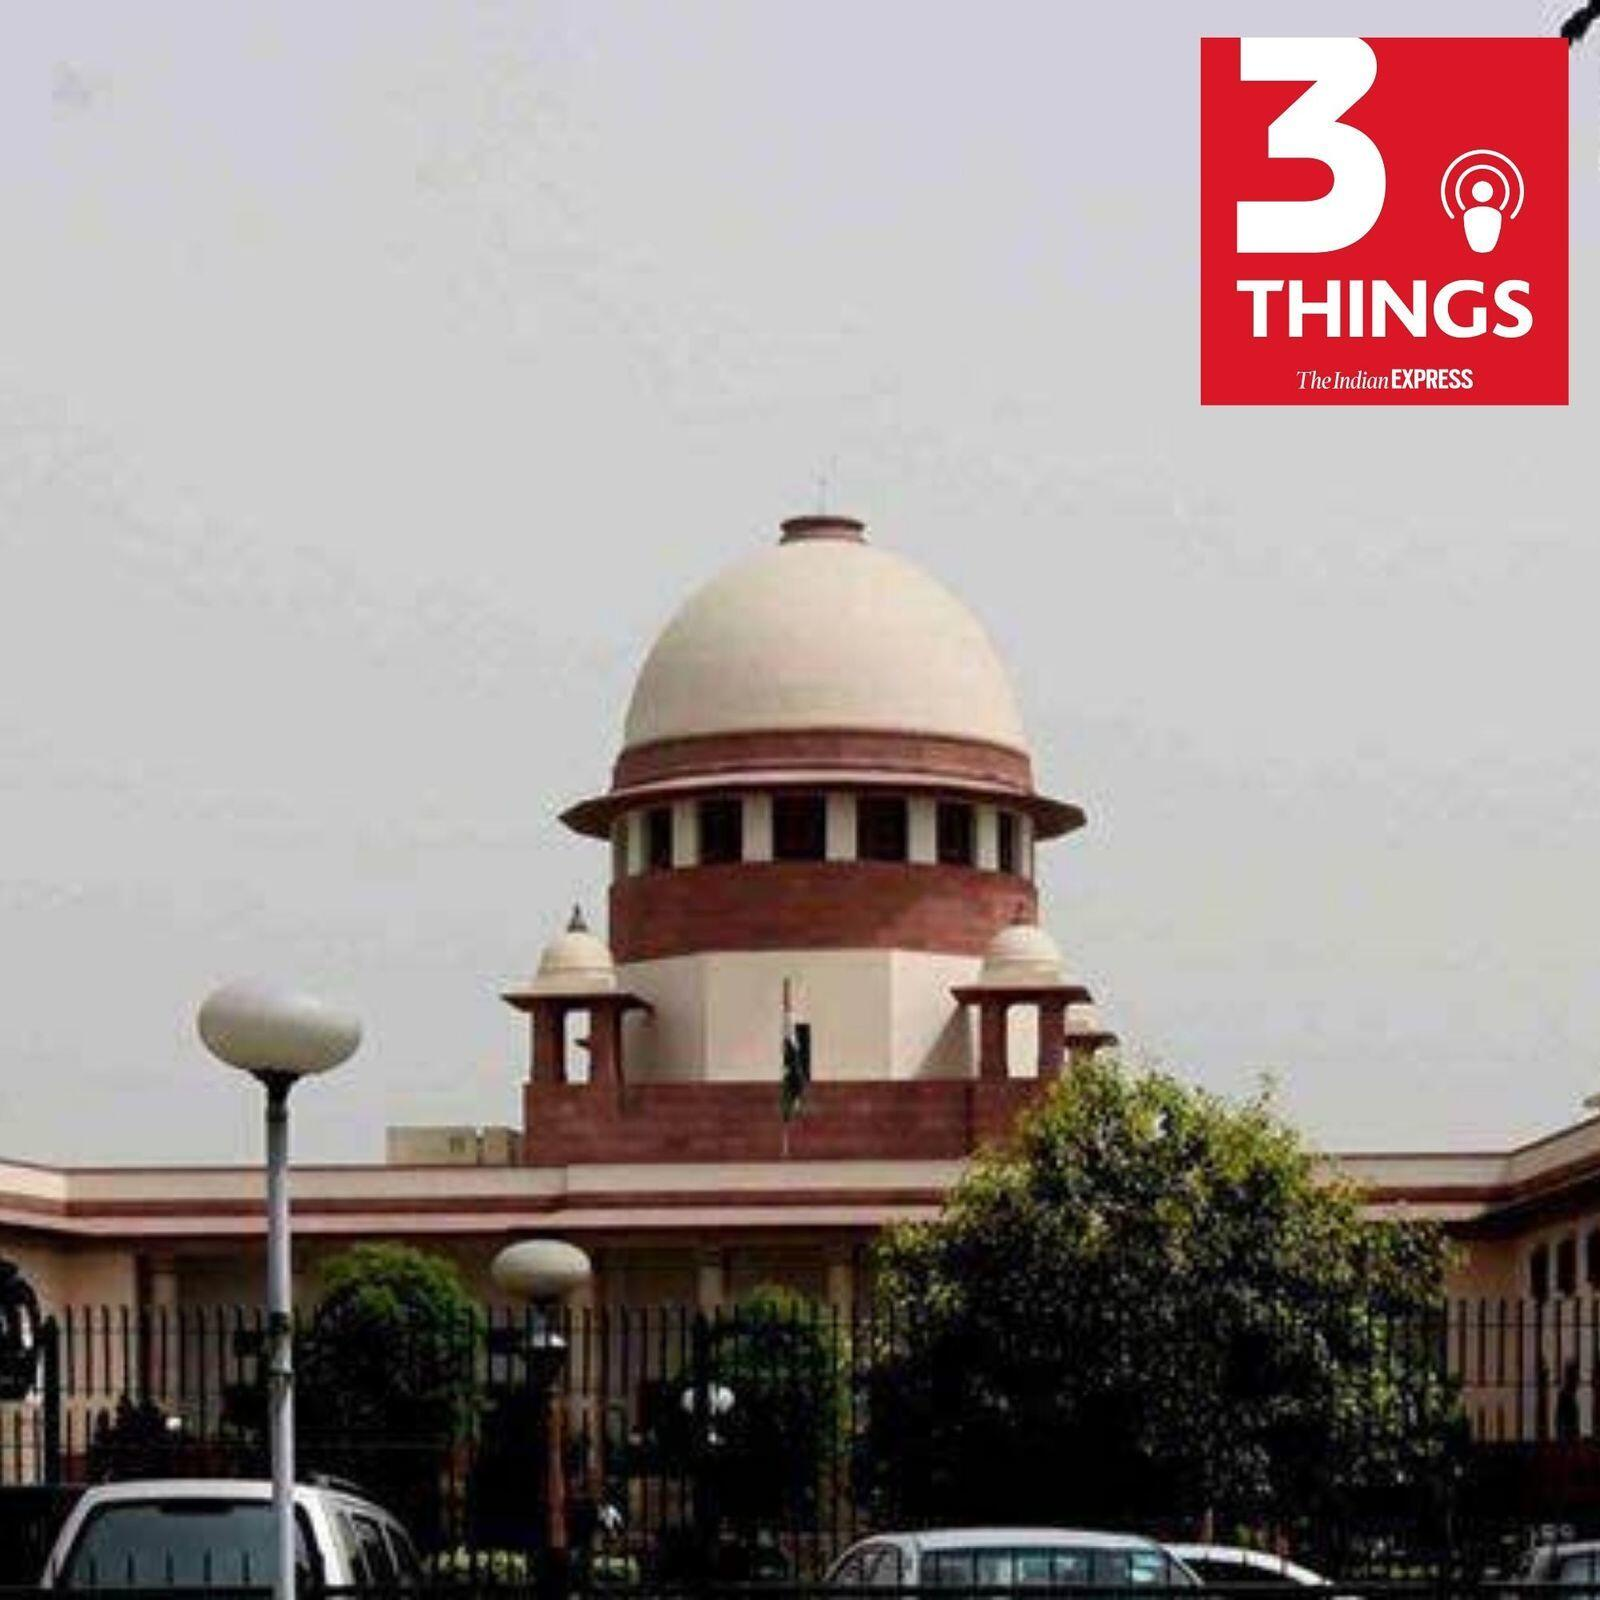 896: How courts have handled COVID-19, India's growth slump, experts criticise lockdown